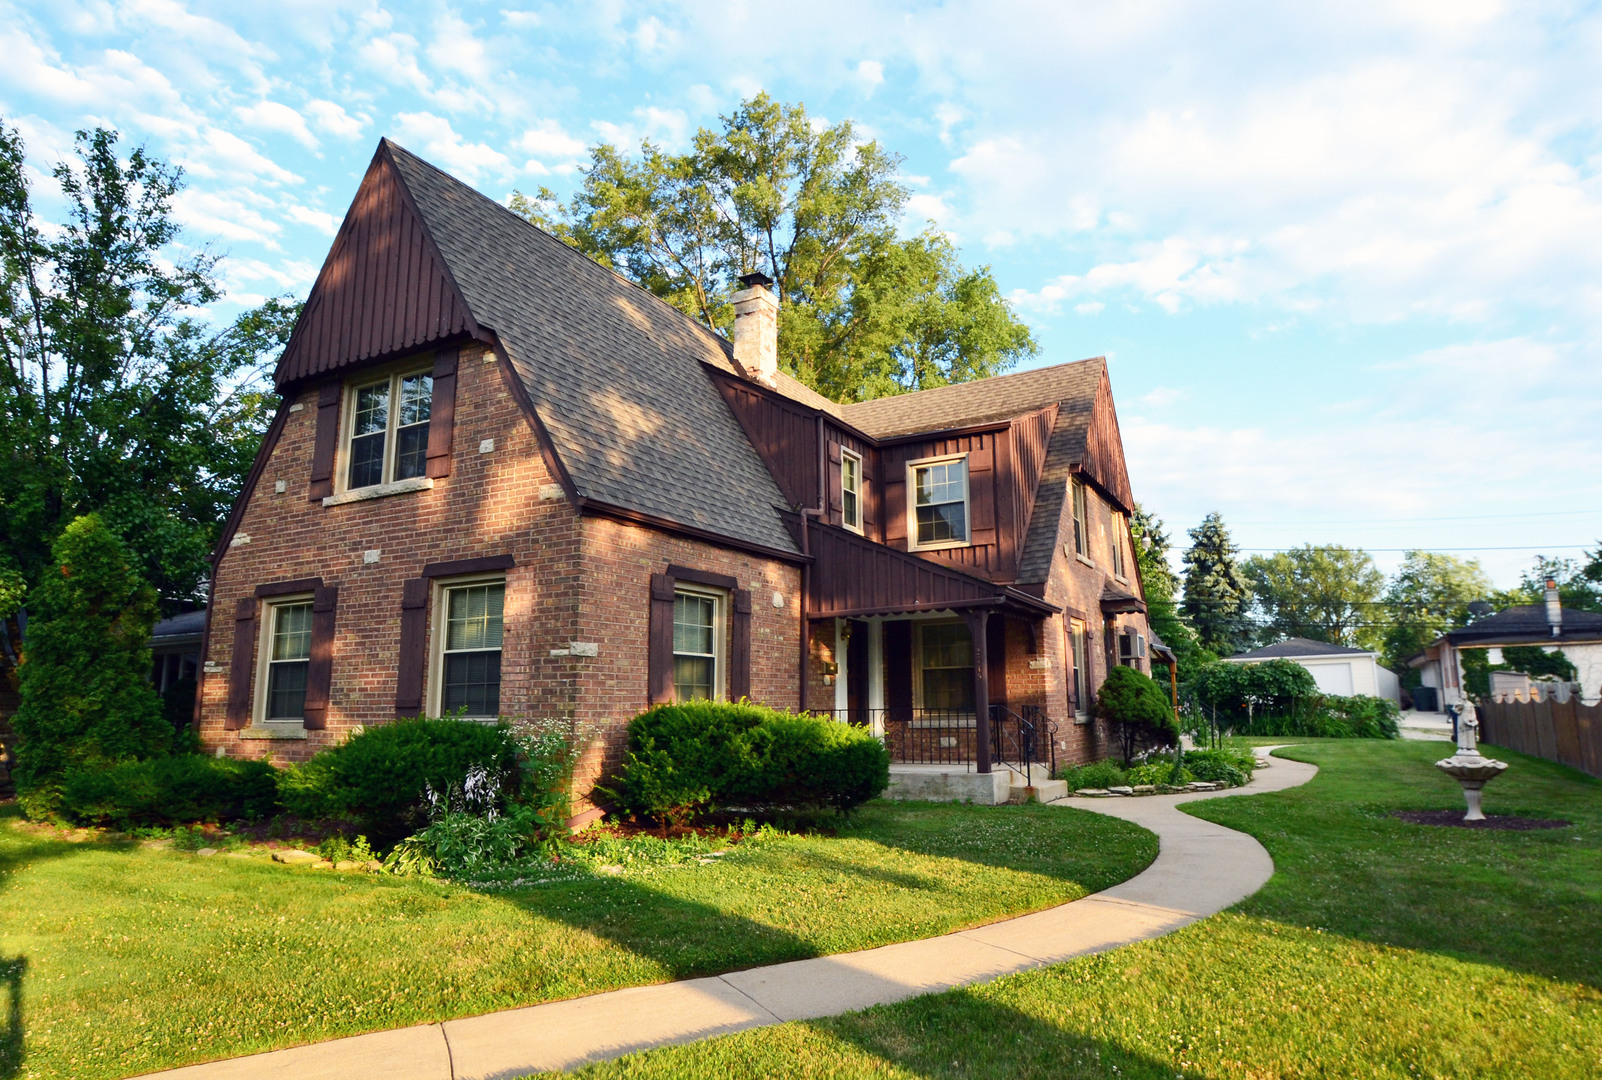 Photo of 2715 West 96th Street EVERGREEN PARK IL 60805